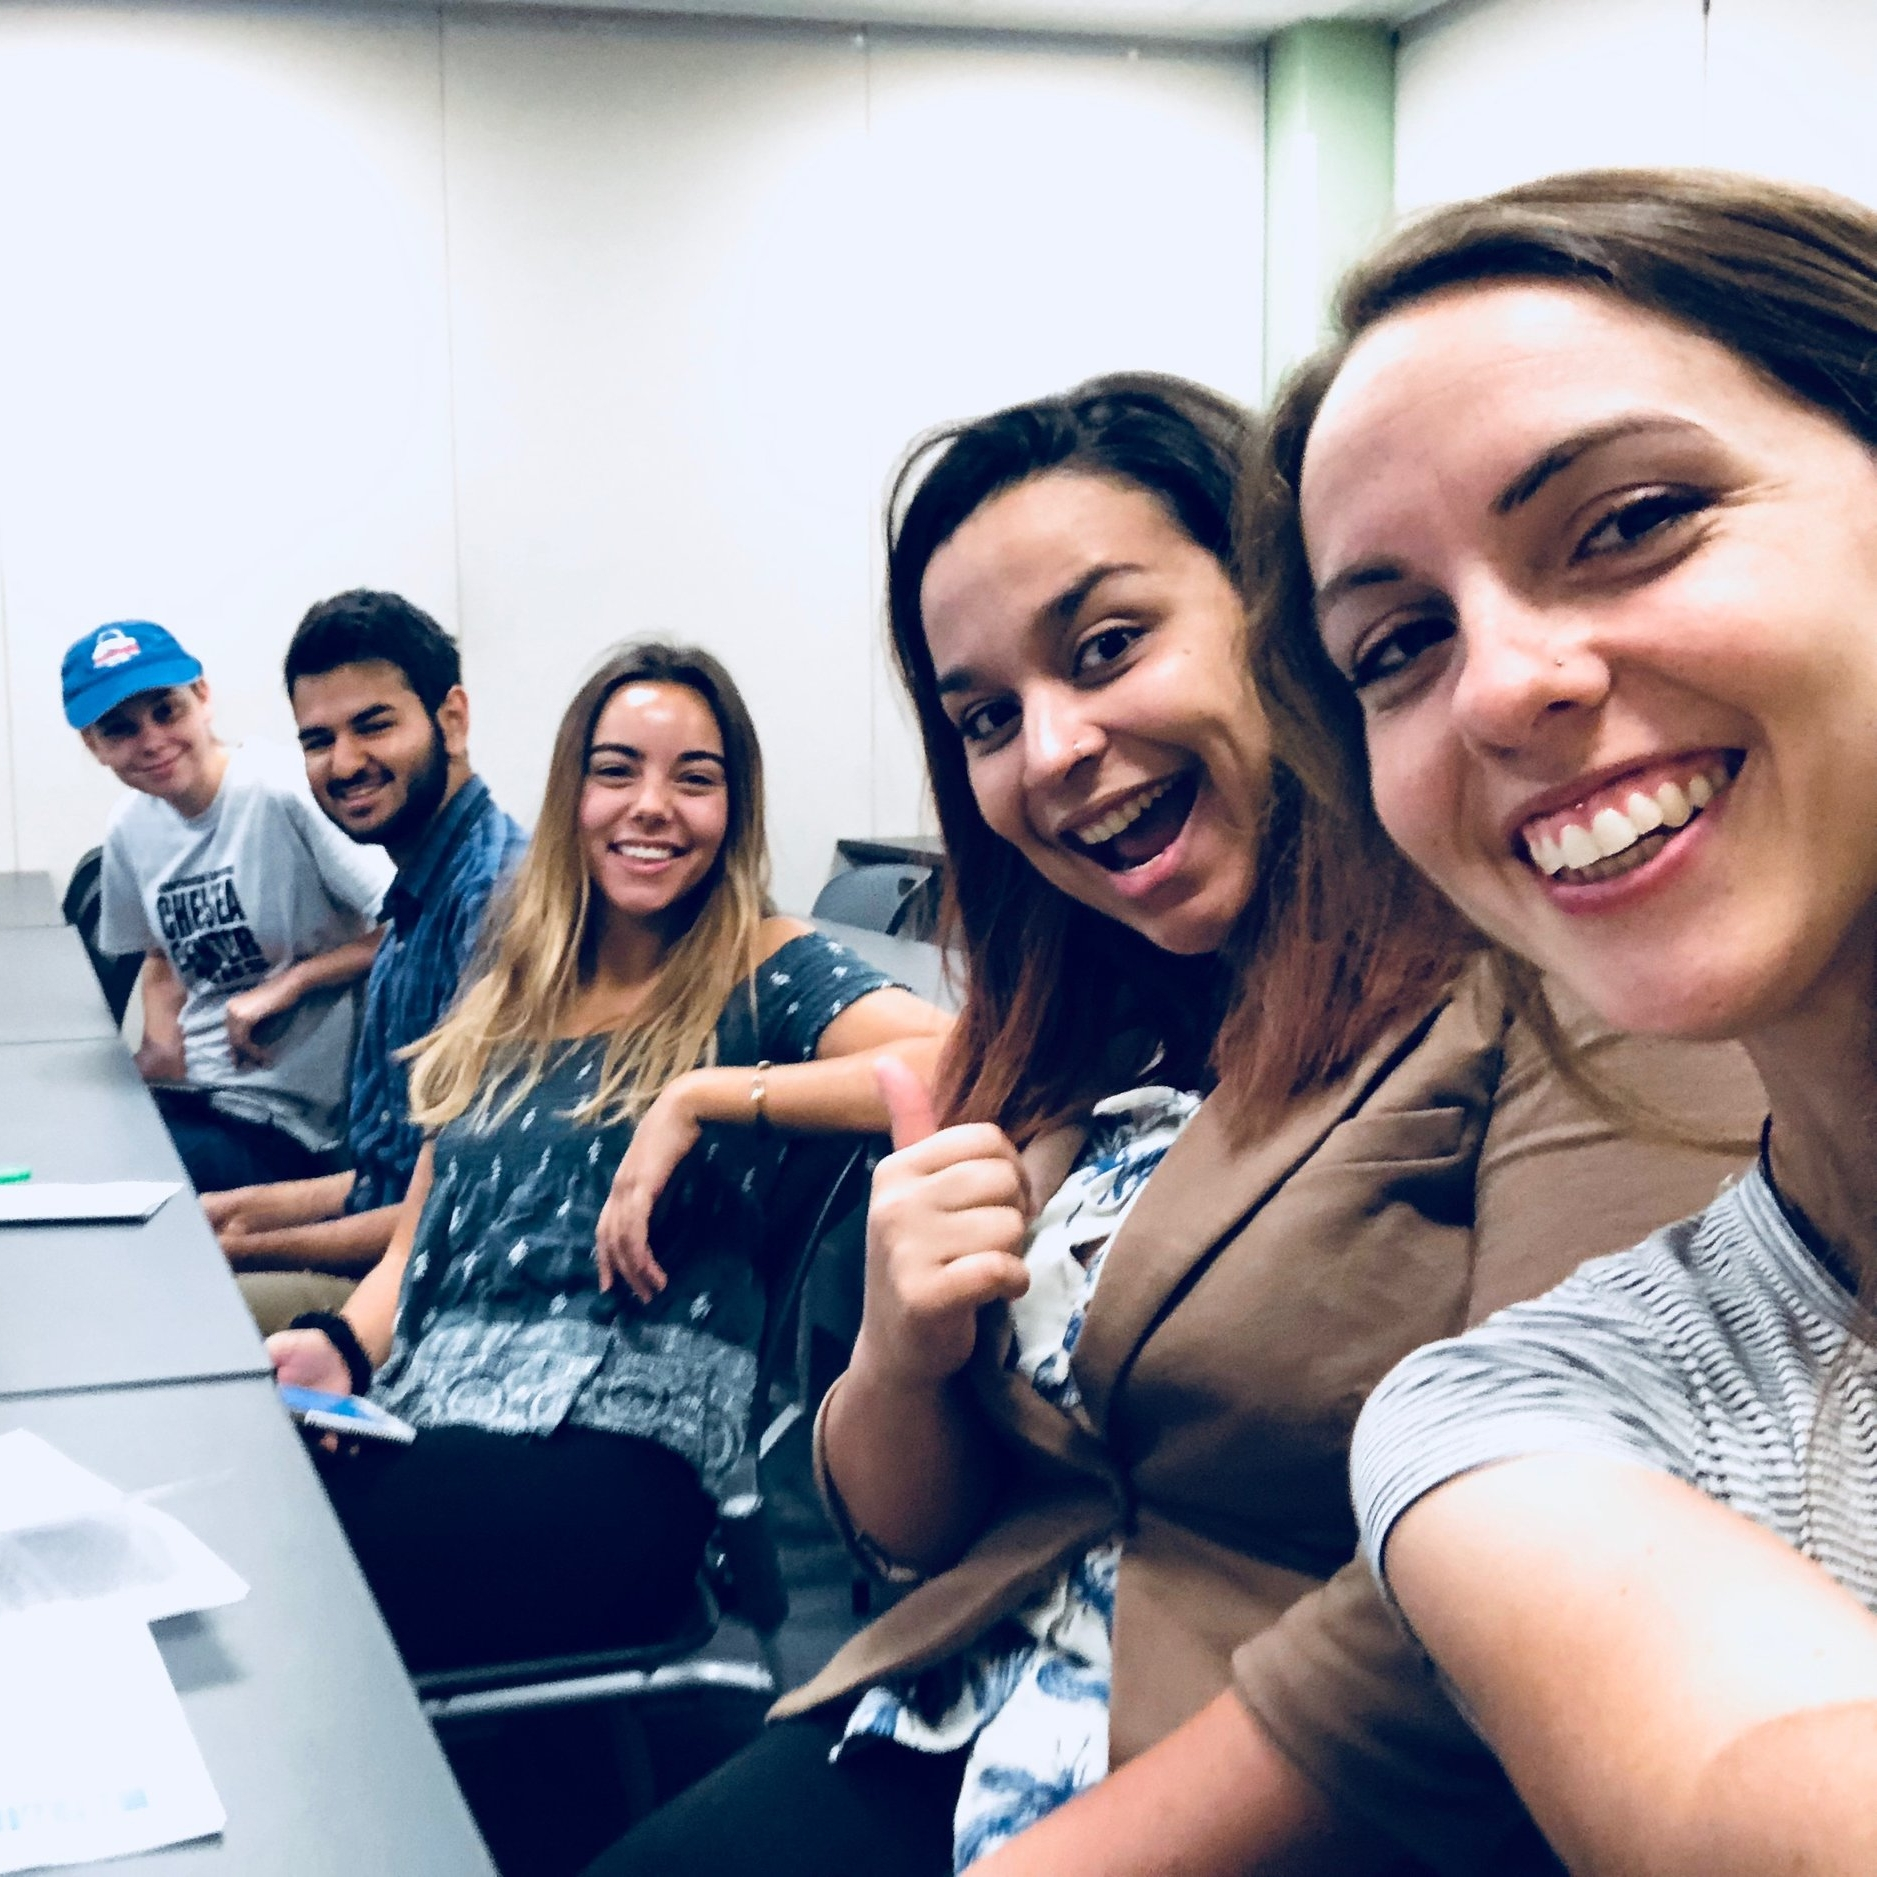 Way to go, Derek!! Derek's research teammates, mentors, and Tyson staff were there to support him. (Left to right: Julia Berndt, Anirudh Gandhi, Olivia Arias, Letícia De Souza Soares, and Solny Adalsteinsson. Not pictured: Kayla Wallace and Beth Biro.)